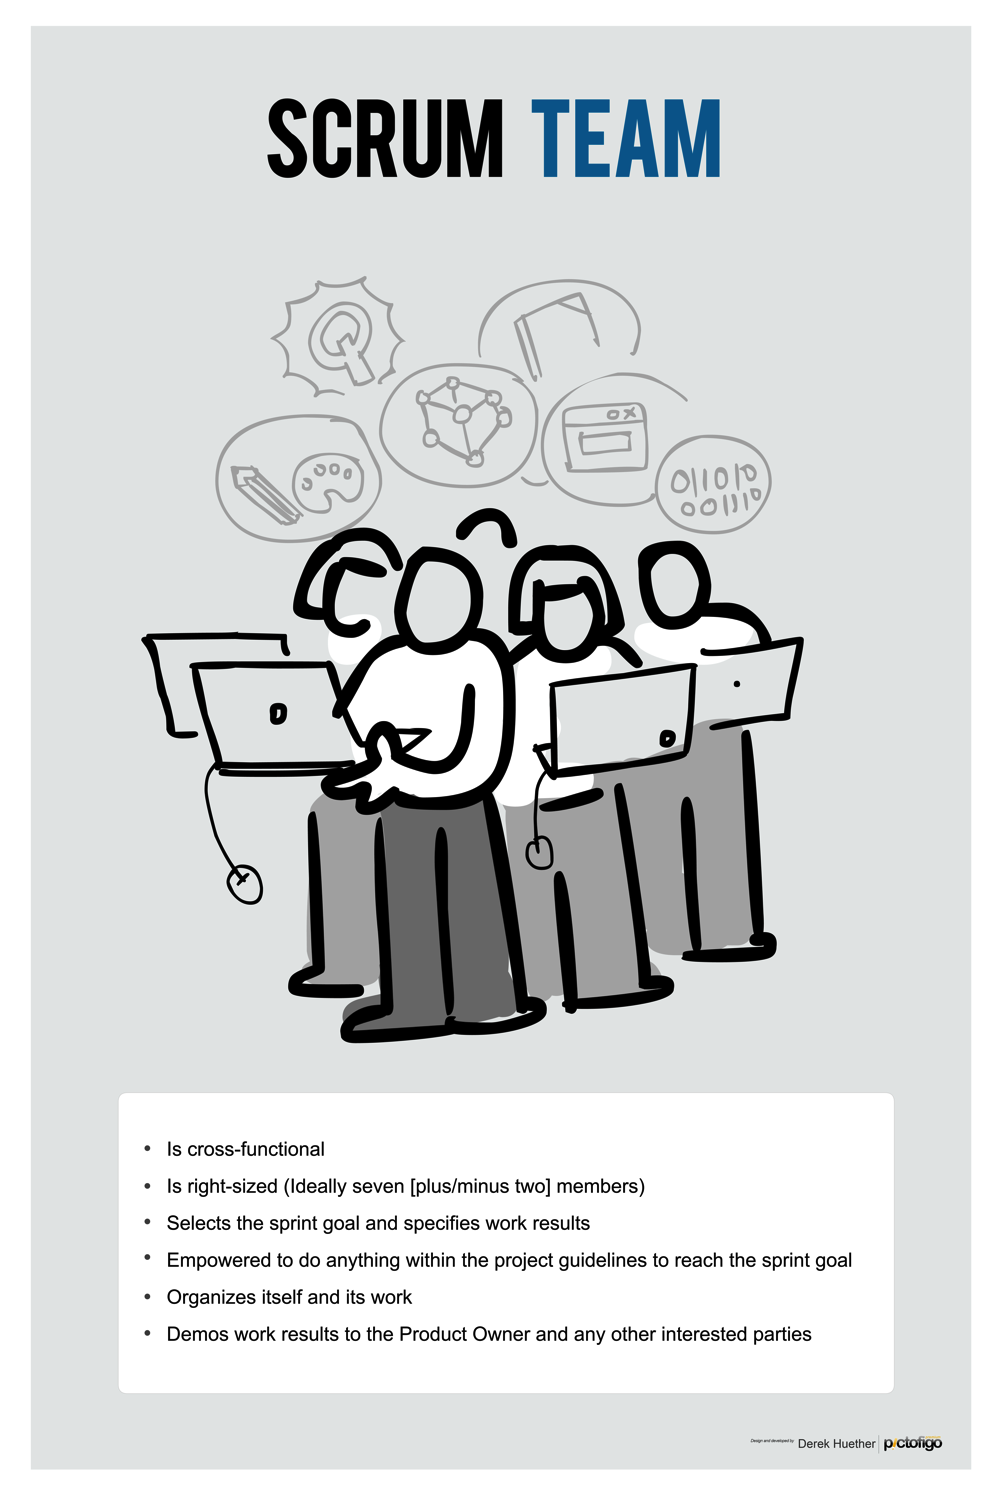 Scrum Team - What are the attributes of a Scrum Team?Perfect for dressing up any wall, or instantly creating a theme for a room. Images look great on this high-quality poster.Available in 11